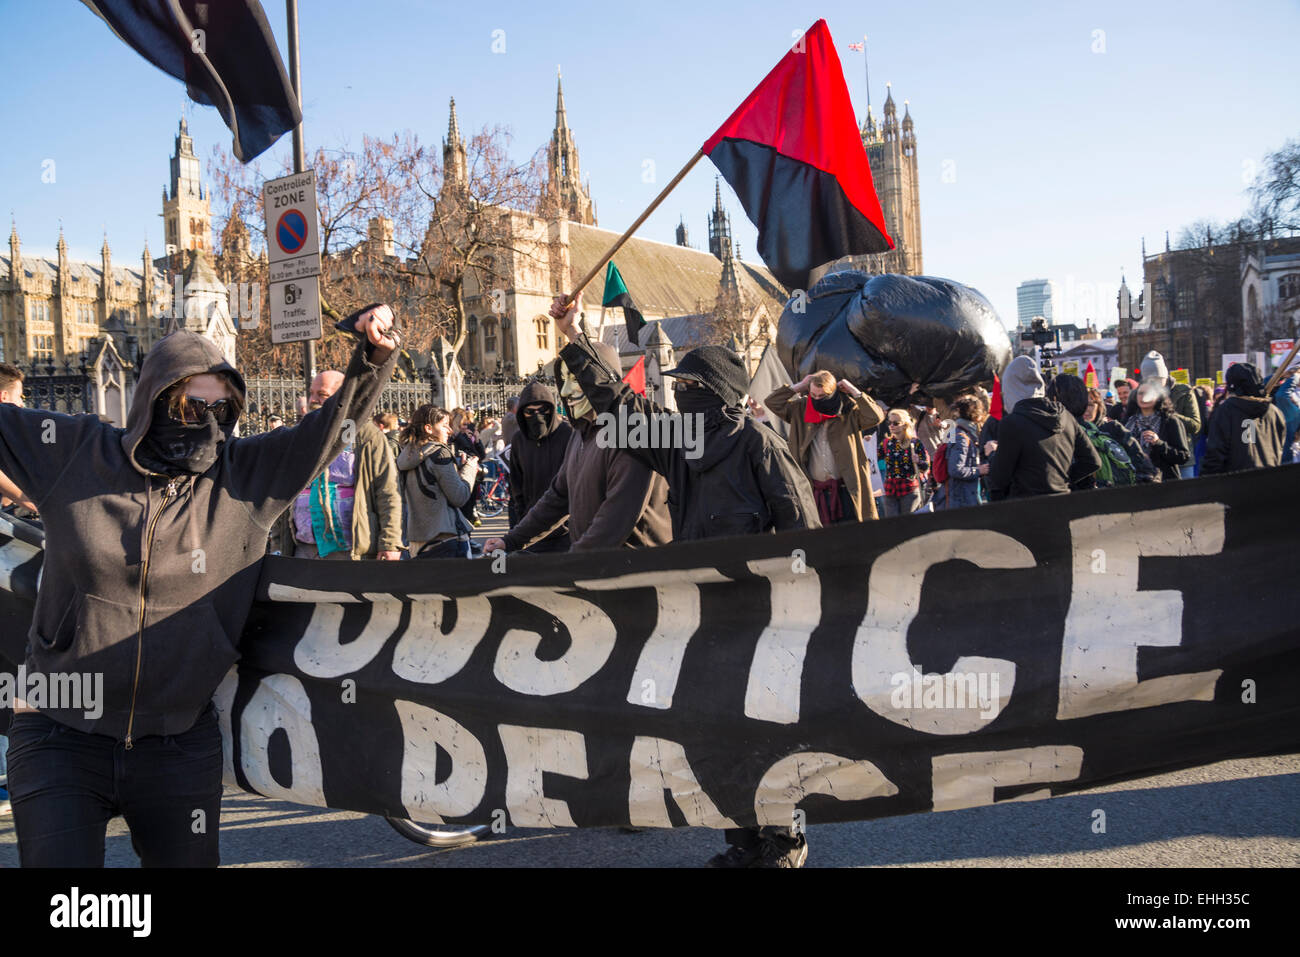 Campaign Against Climate Change demonstration, Westminster, London, 7 March 2015, Uk - Stock Image